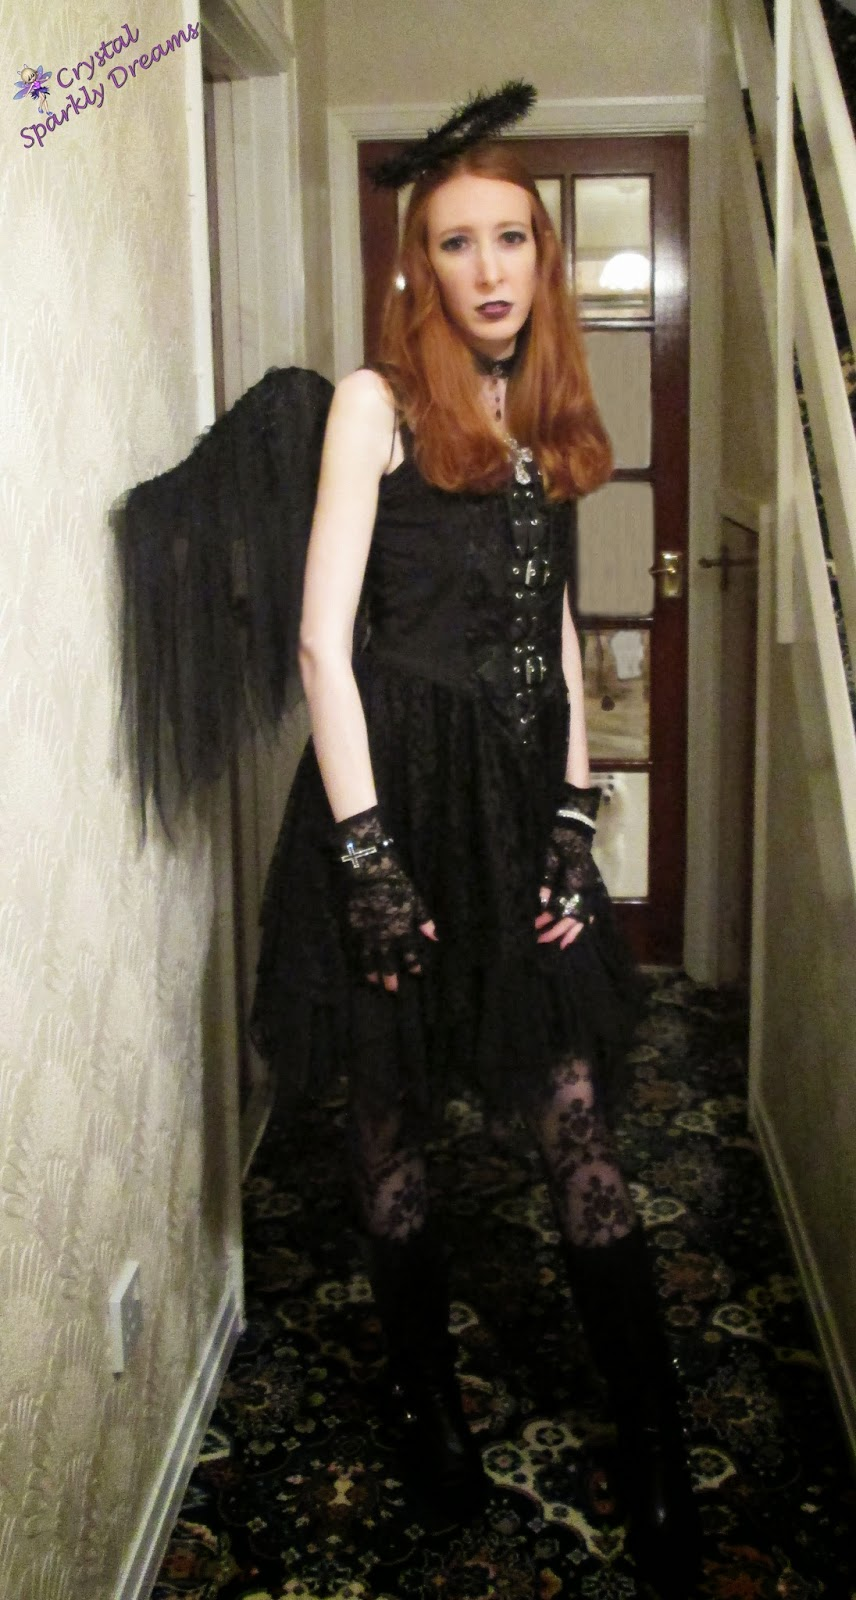 Halloween costume ideas with black lace dress